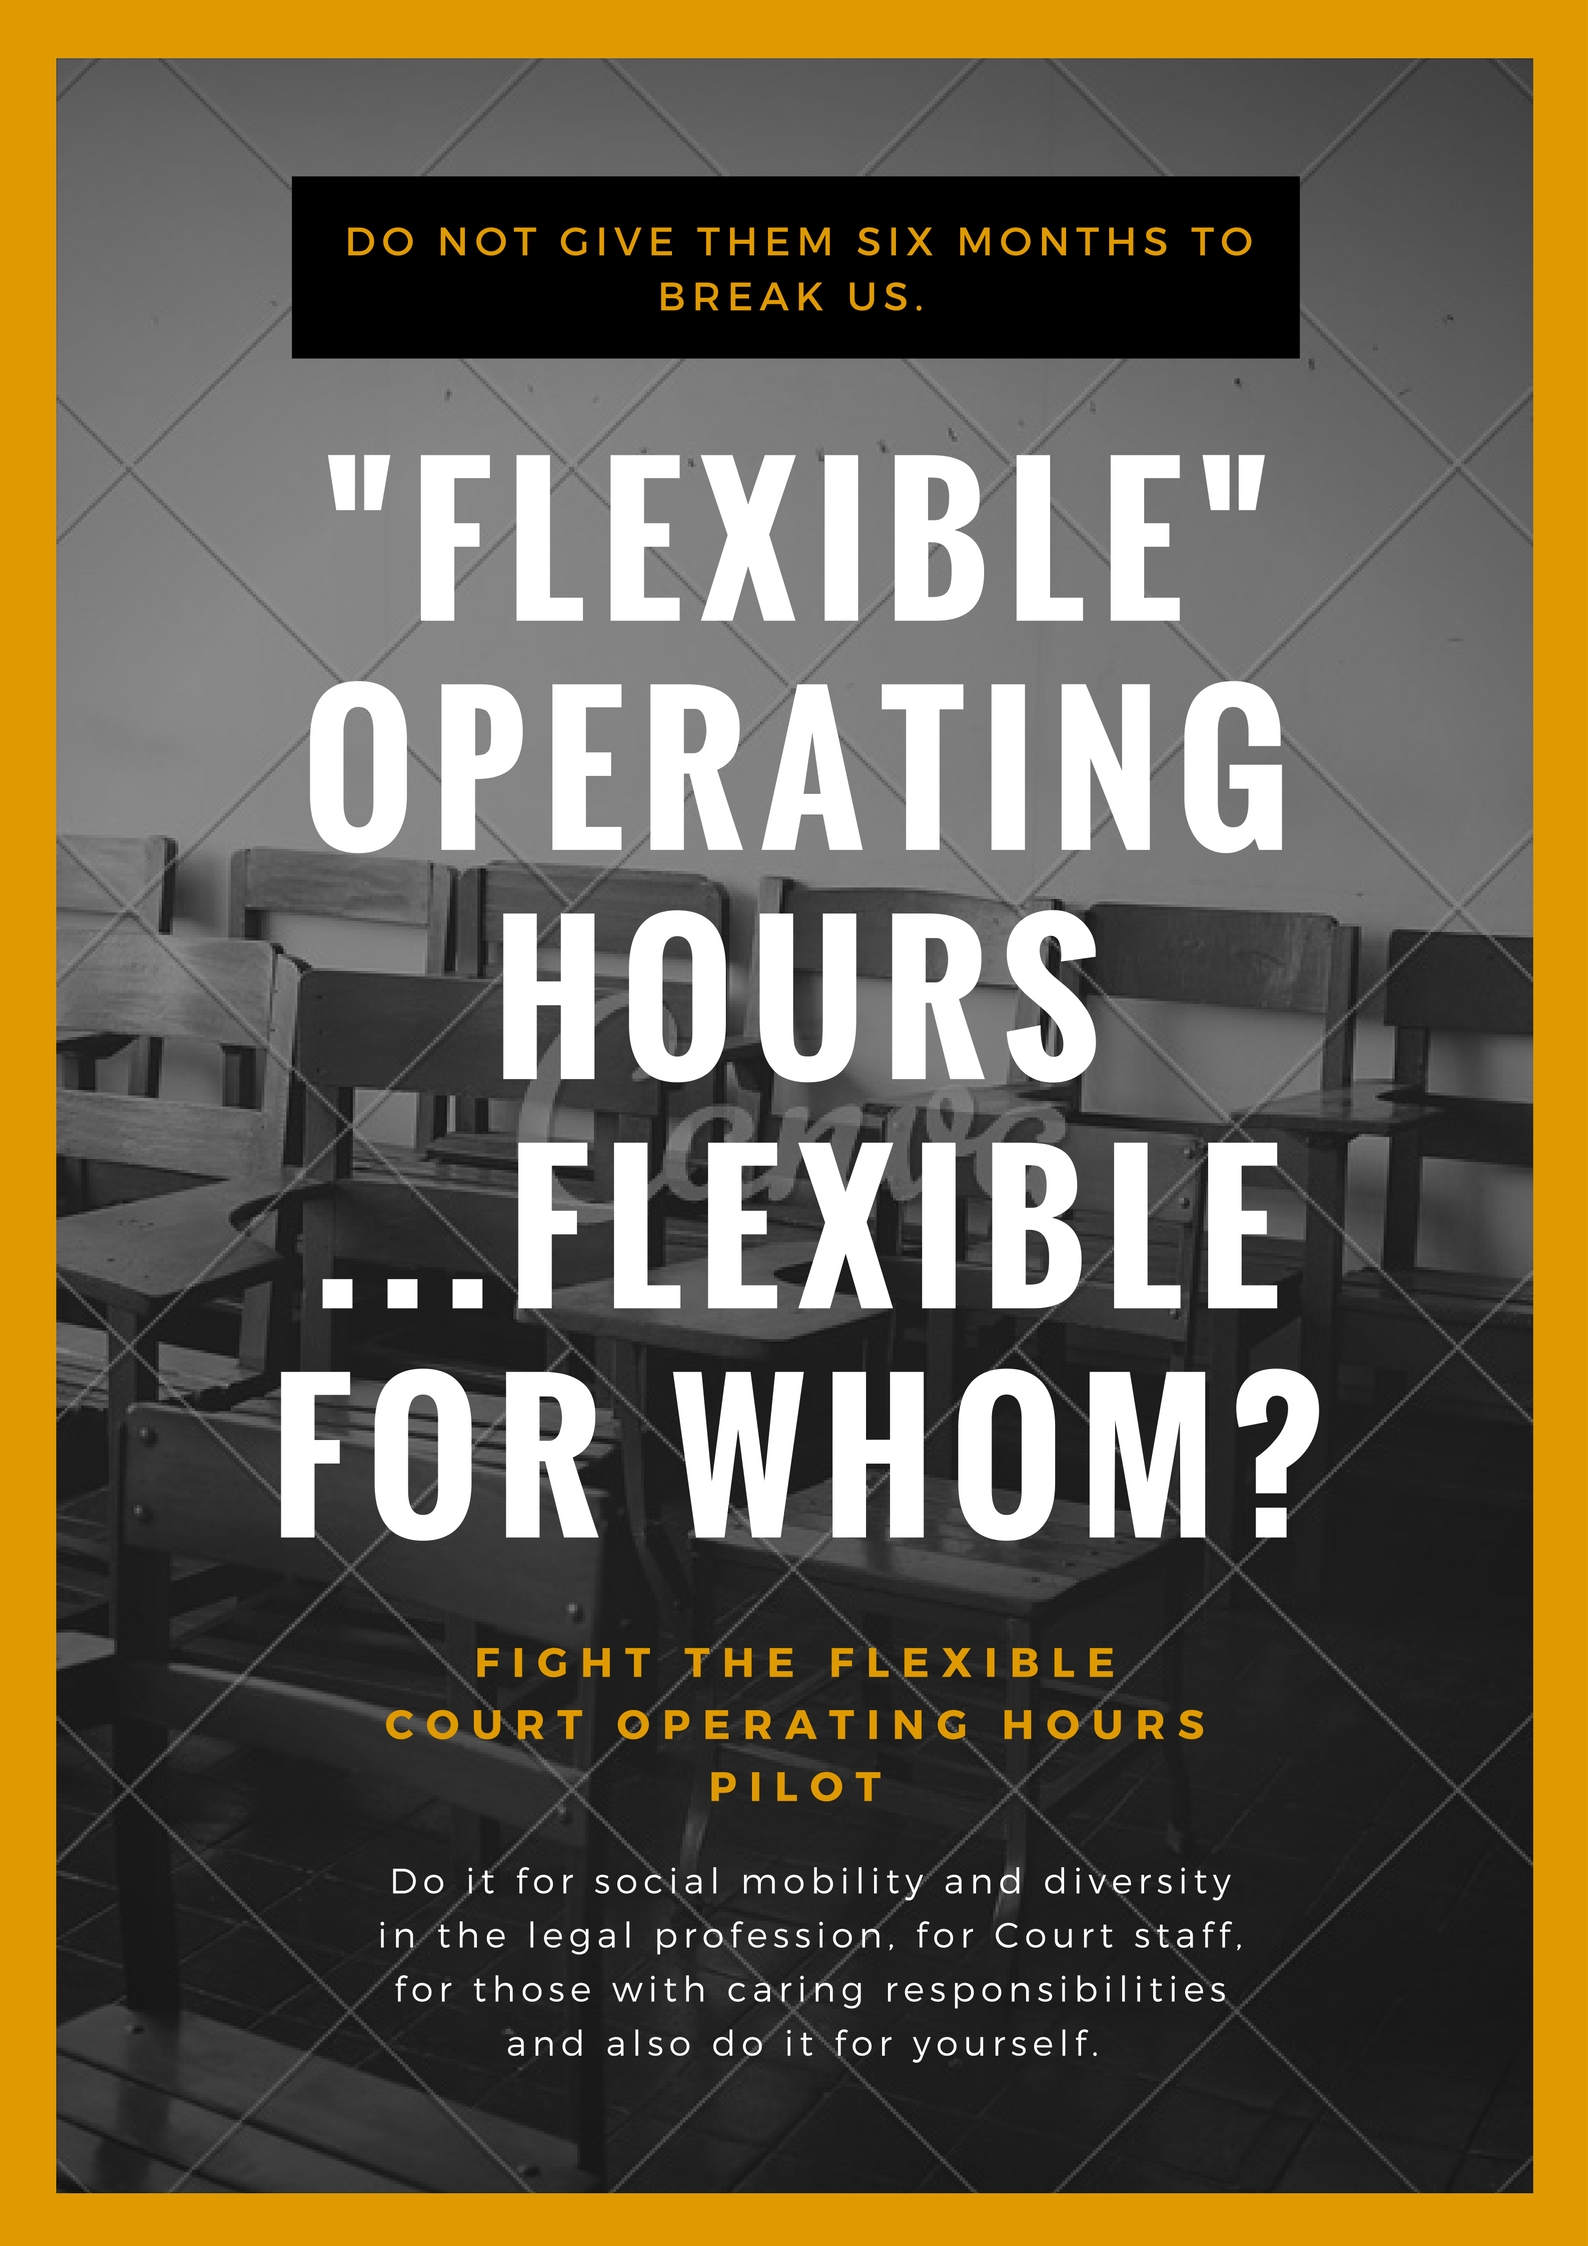 Flexible for Whom_.jpg